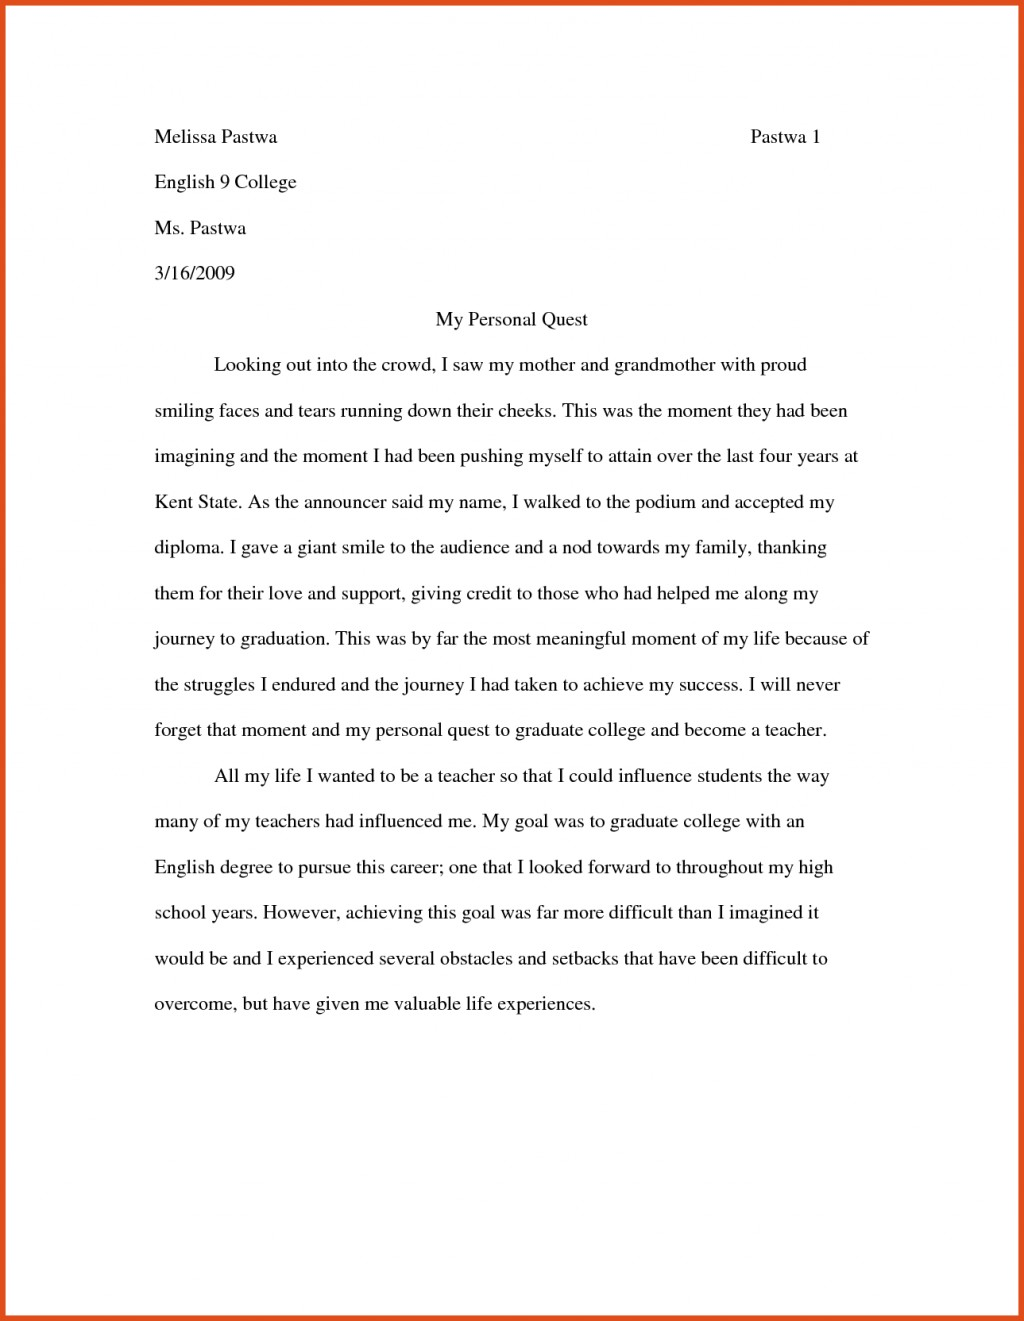 014 Narrative Essay By Students Example Of Storytelling Examples For Middle School High Introduction College With Citations About Myself Sat Mla Gre Archaicawful Childhood Memory Losing Loved One Excellent Spm Large